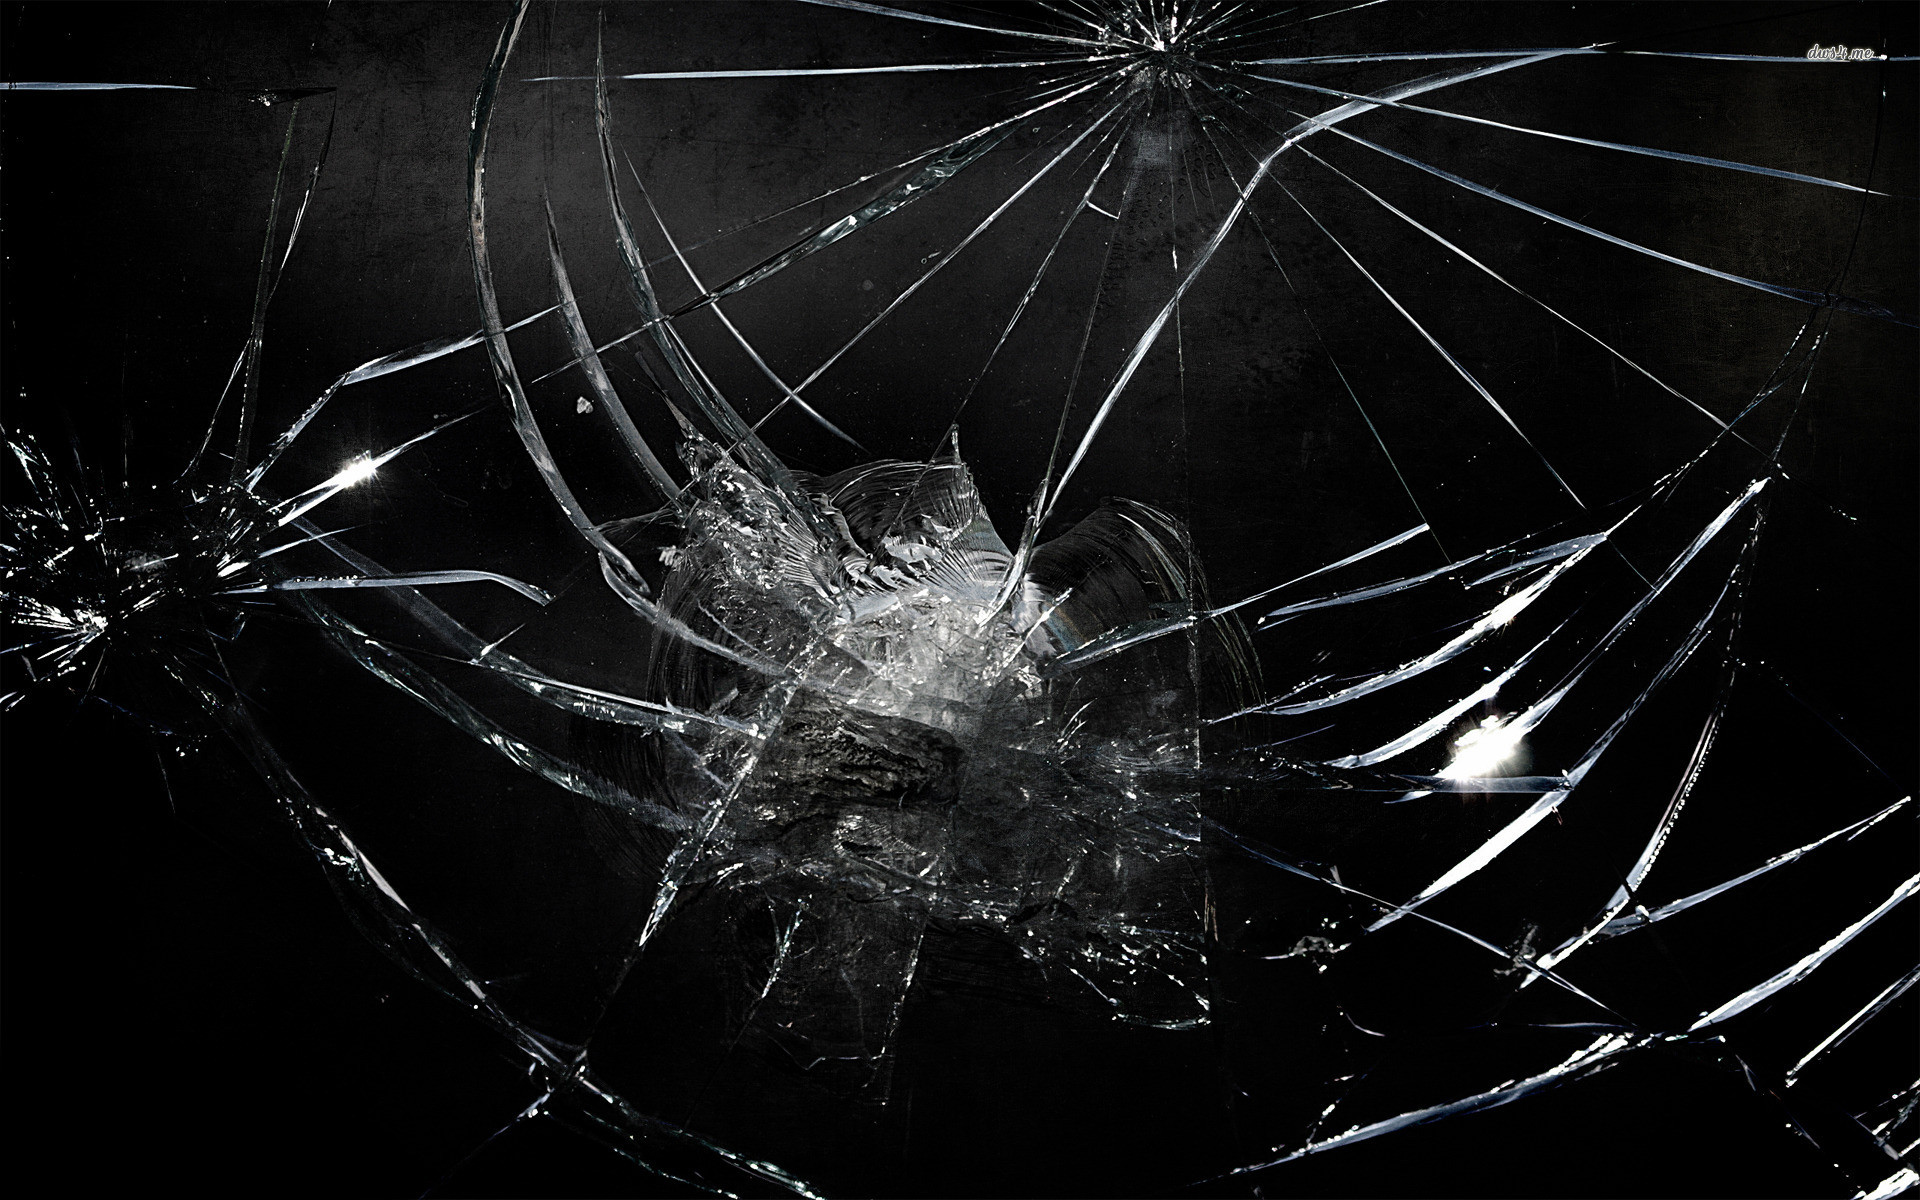 Cracked Screen Wallpaper Windows 10 (77+ images)